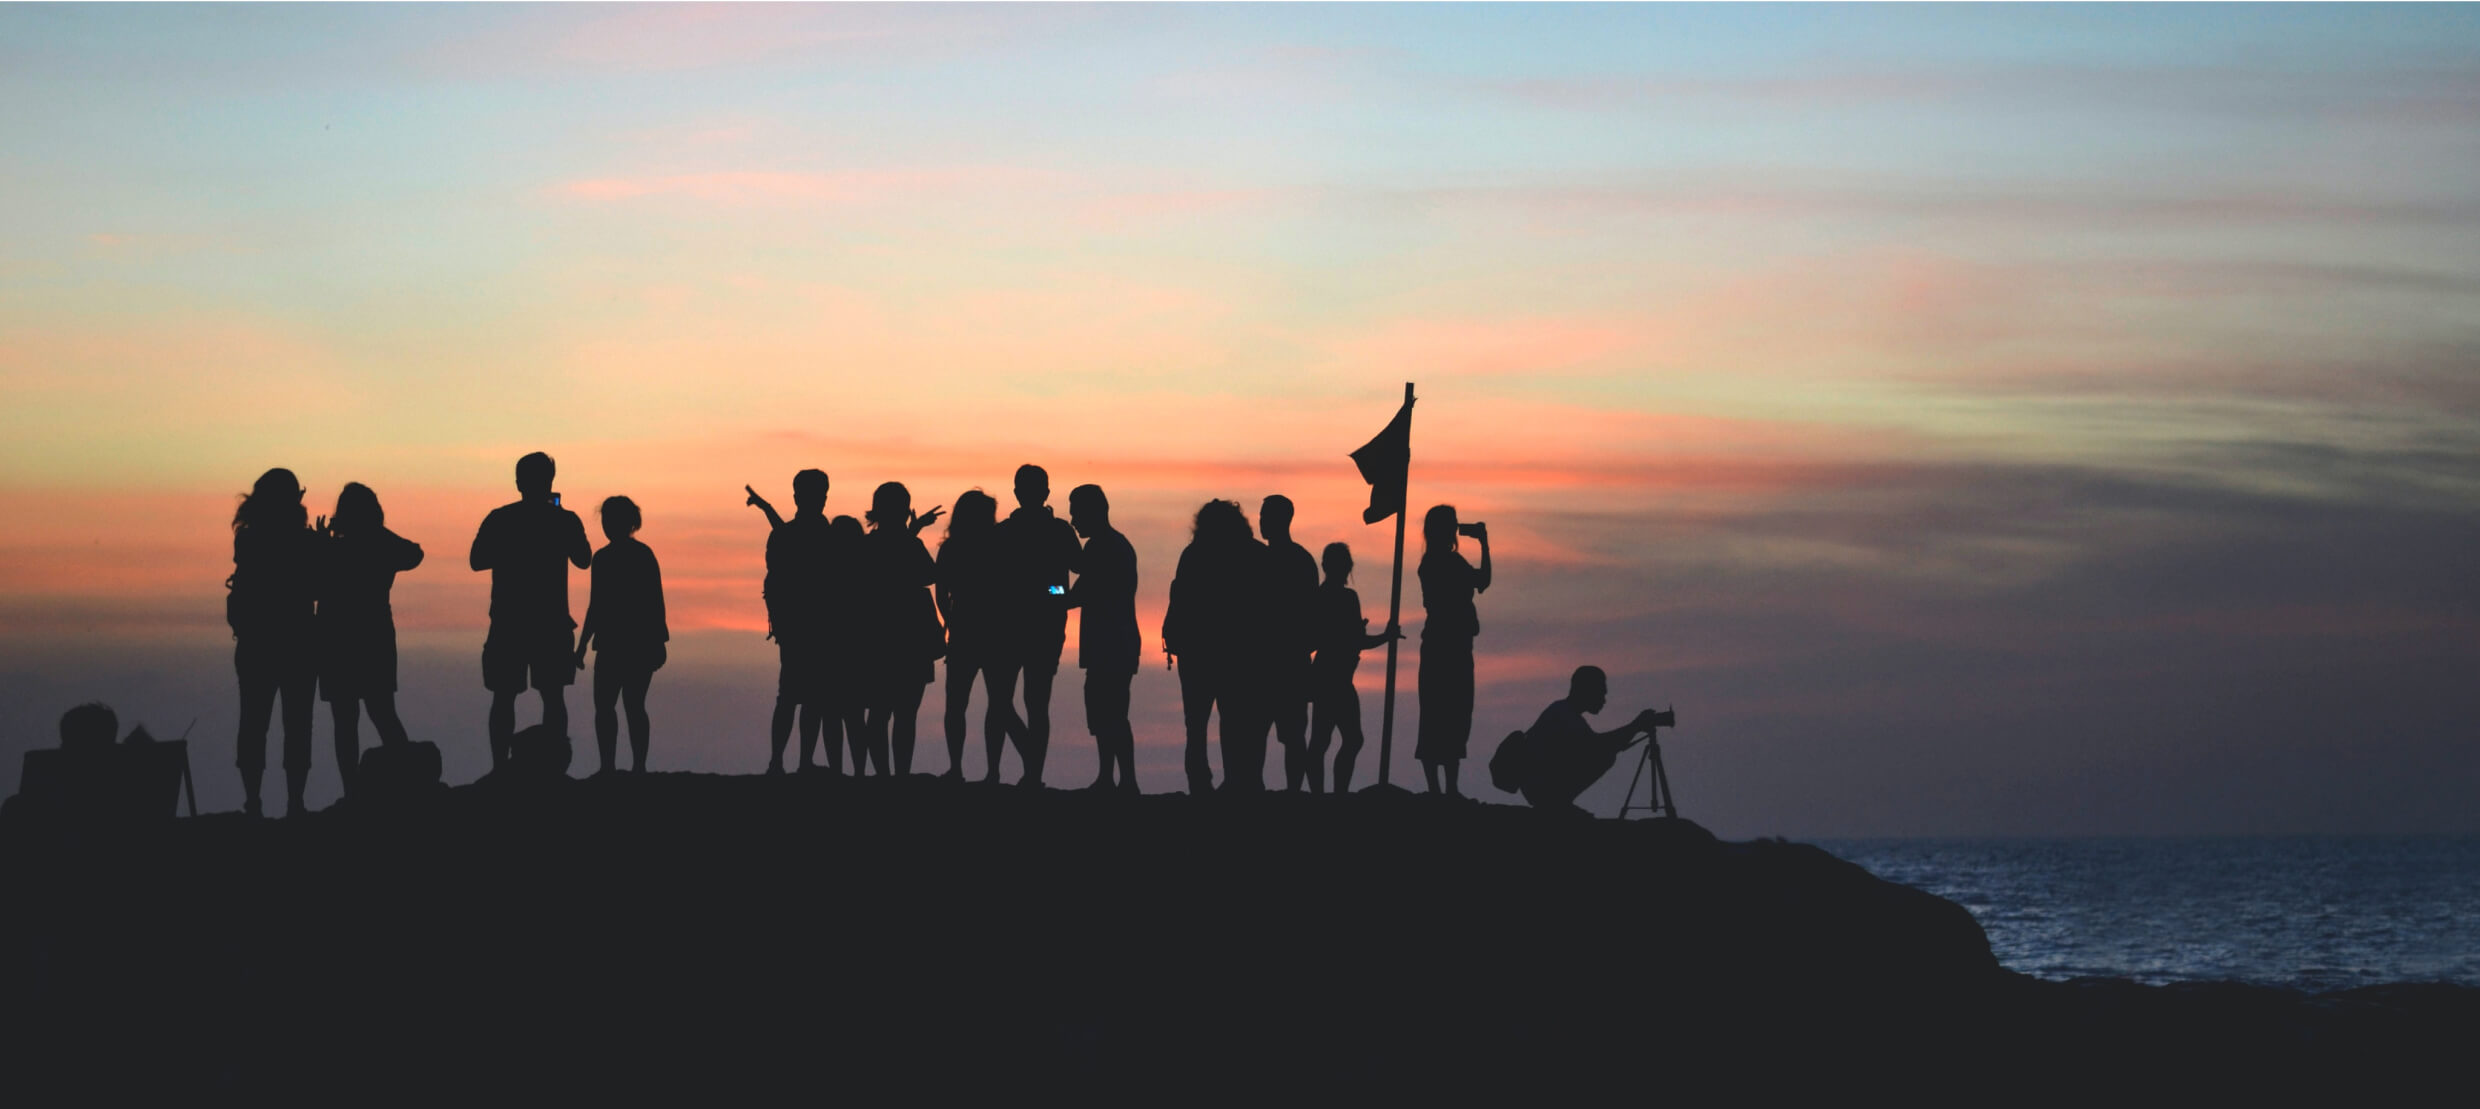 The silhouettes of a group of people standing near a body of water at sunset.